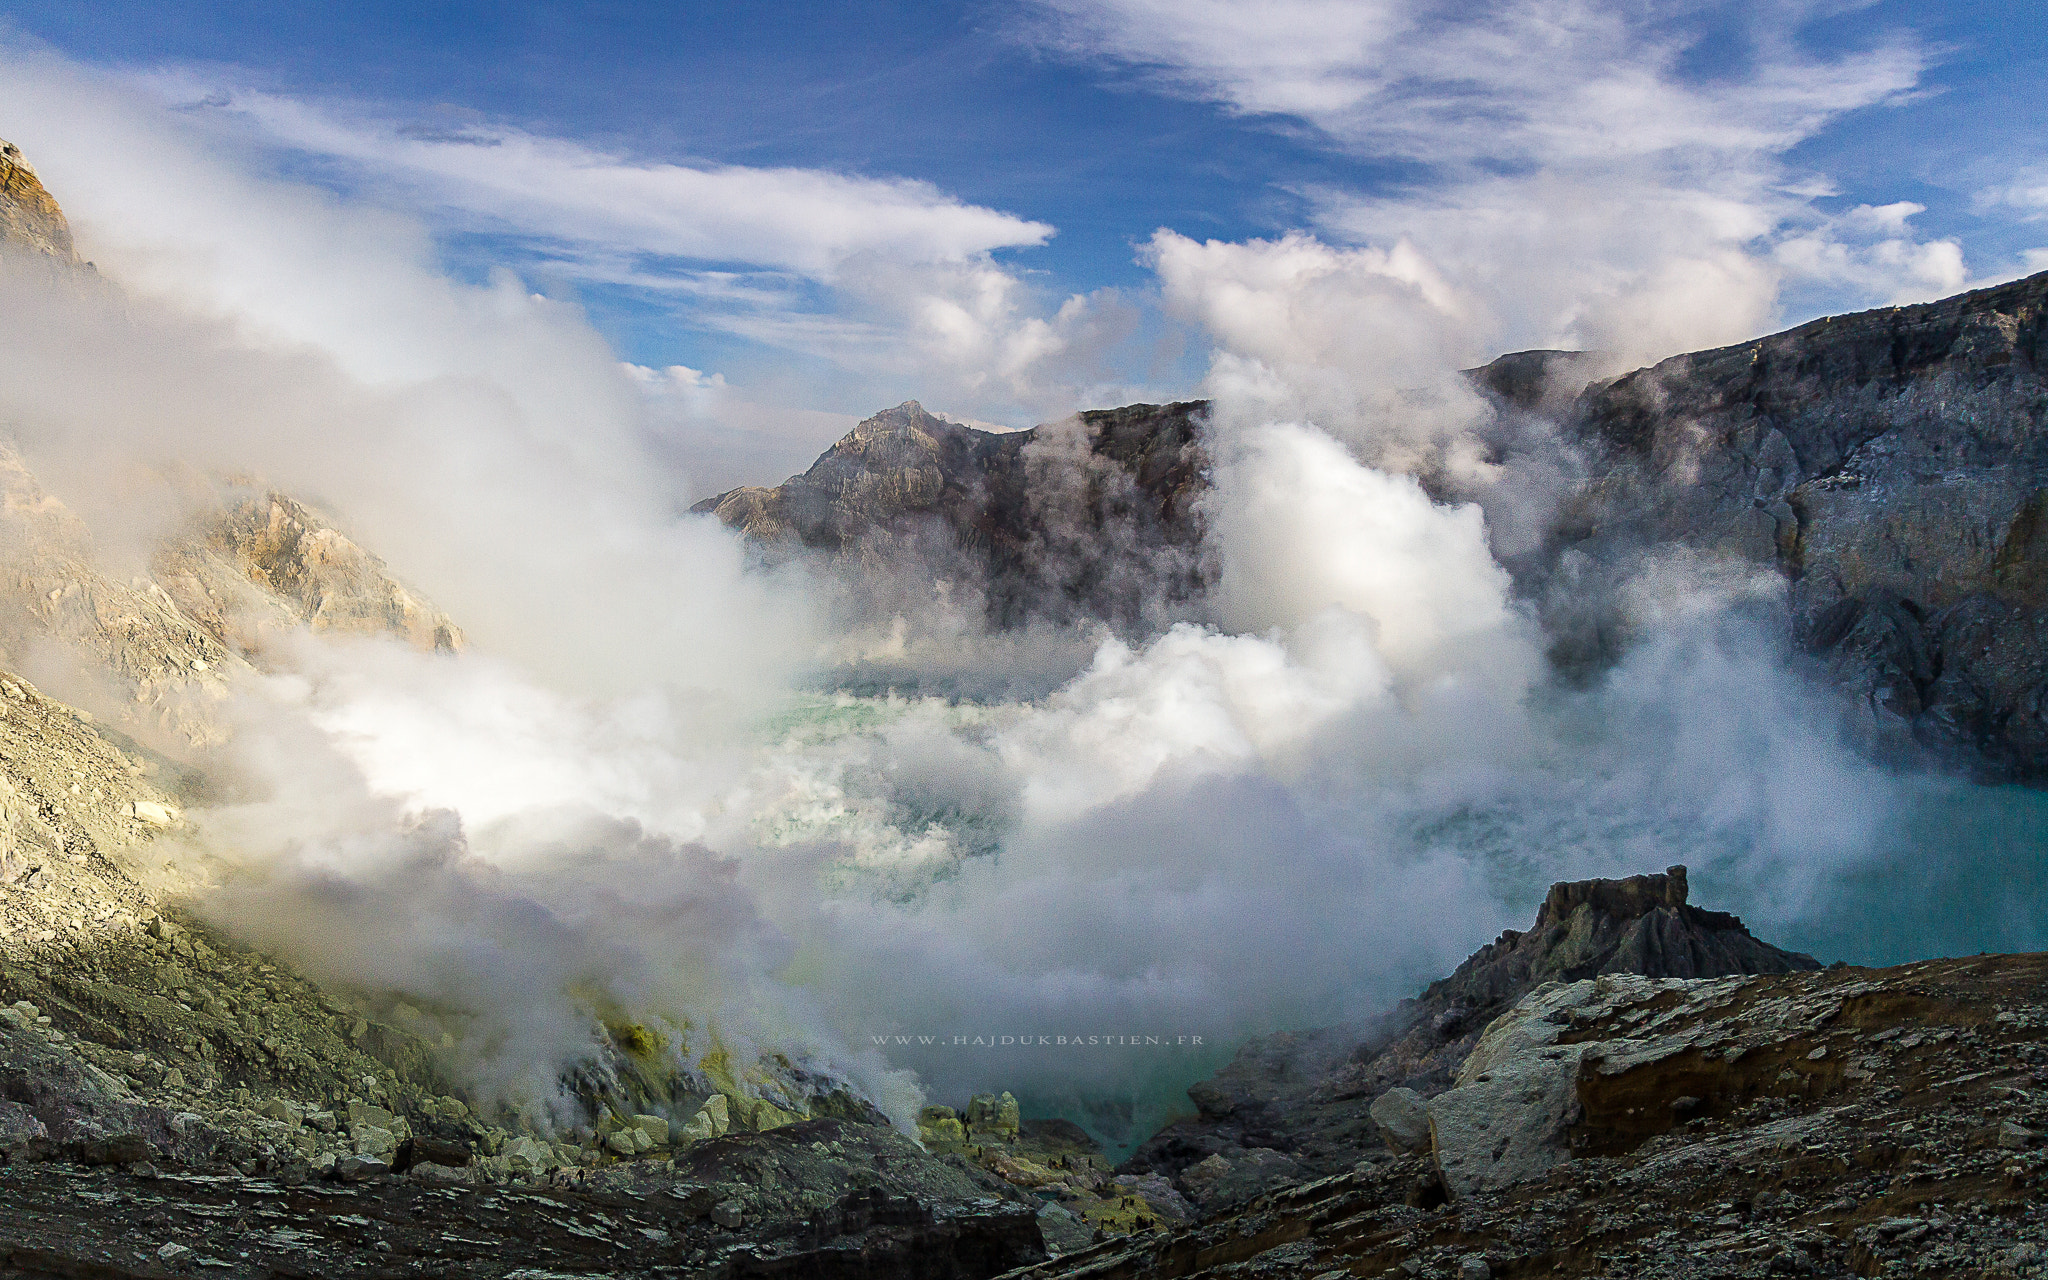 Photograph Ijen by Bastien HAJDUK on 500px